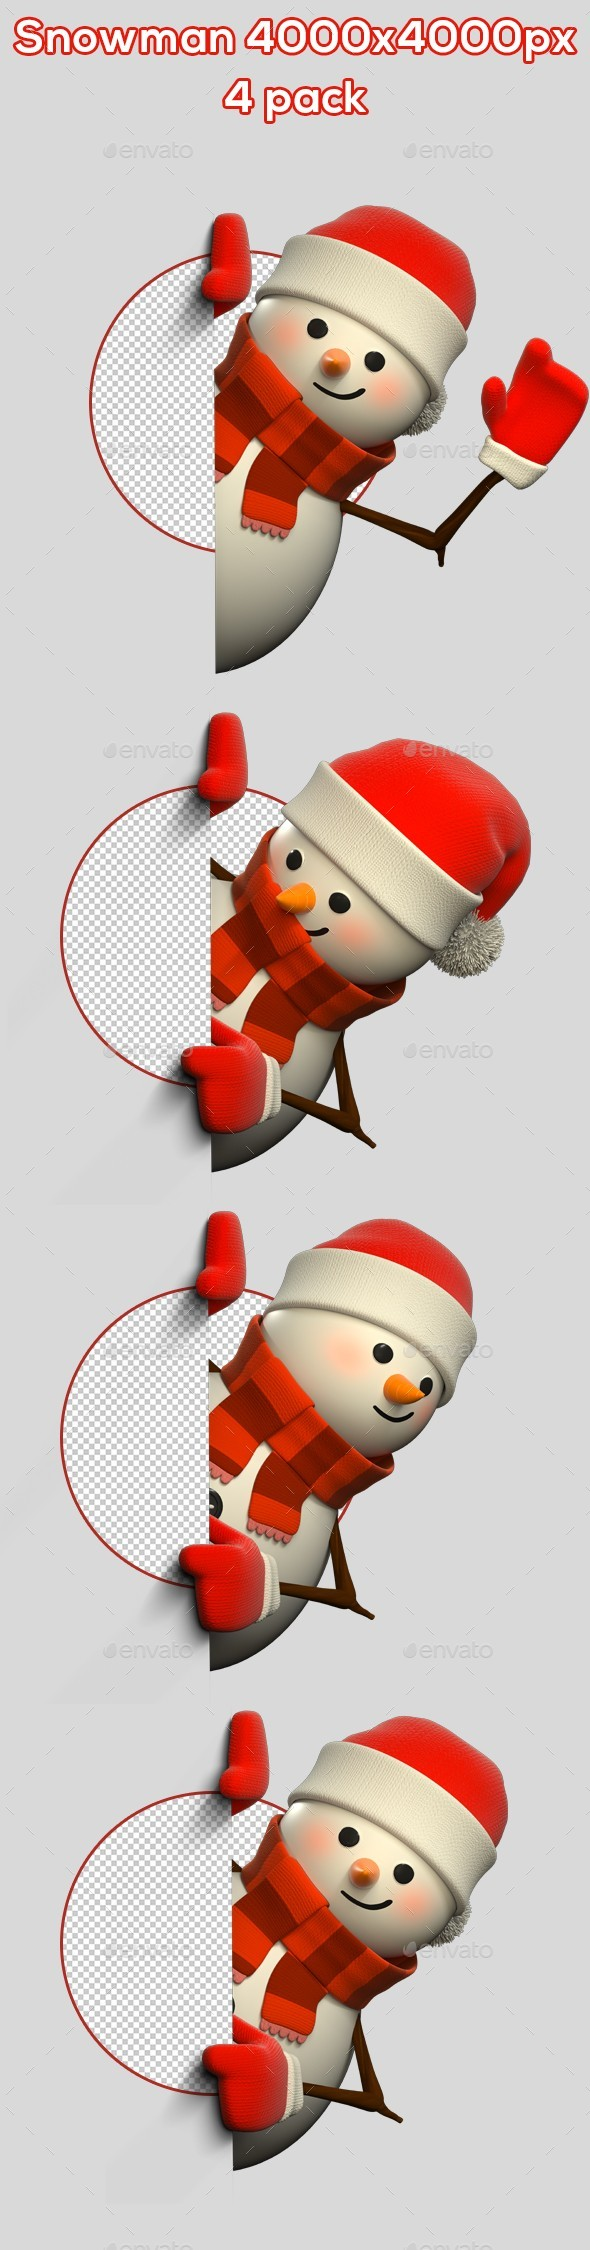 GraphicRiver 3D Snowman From Side 4 Pack 21031551